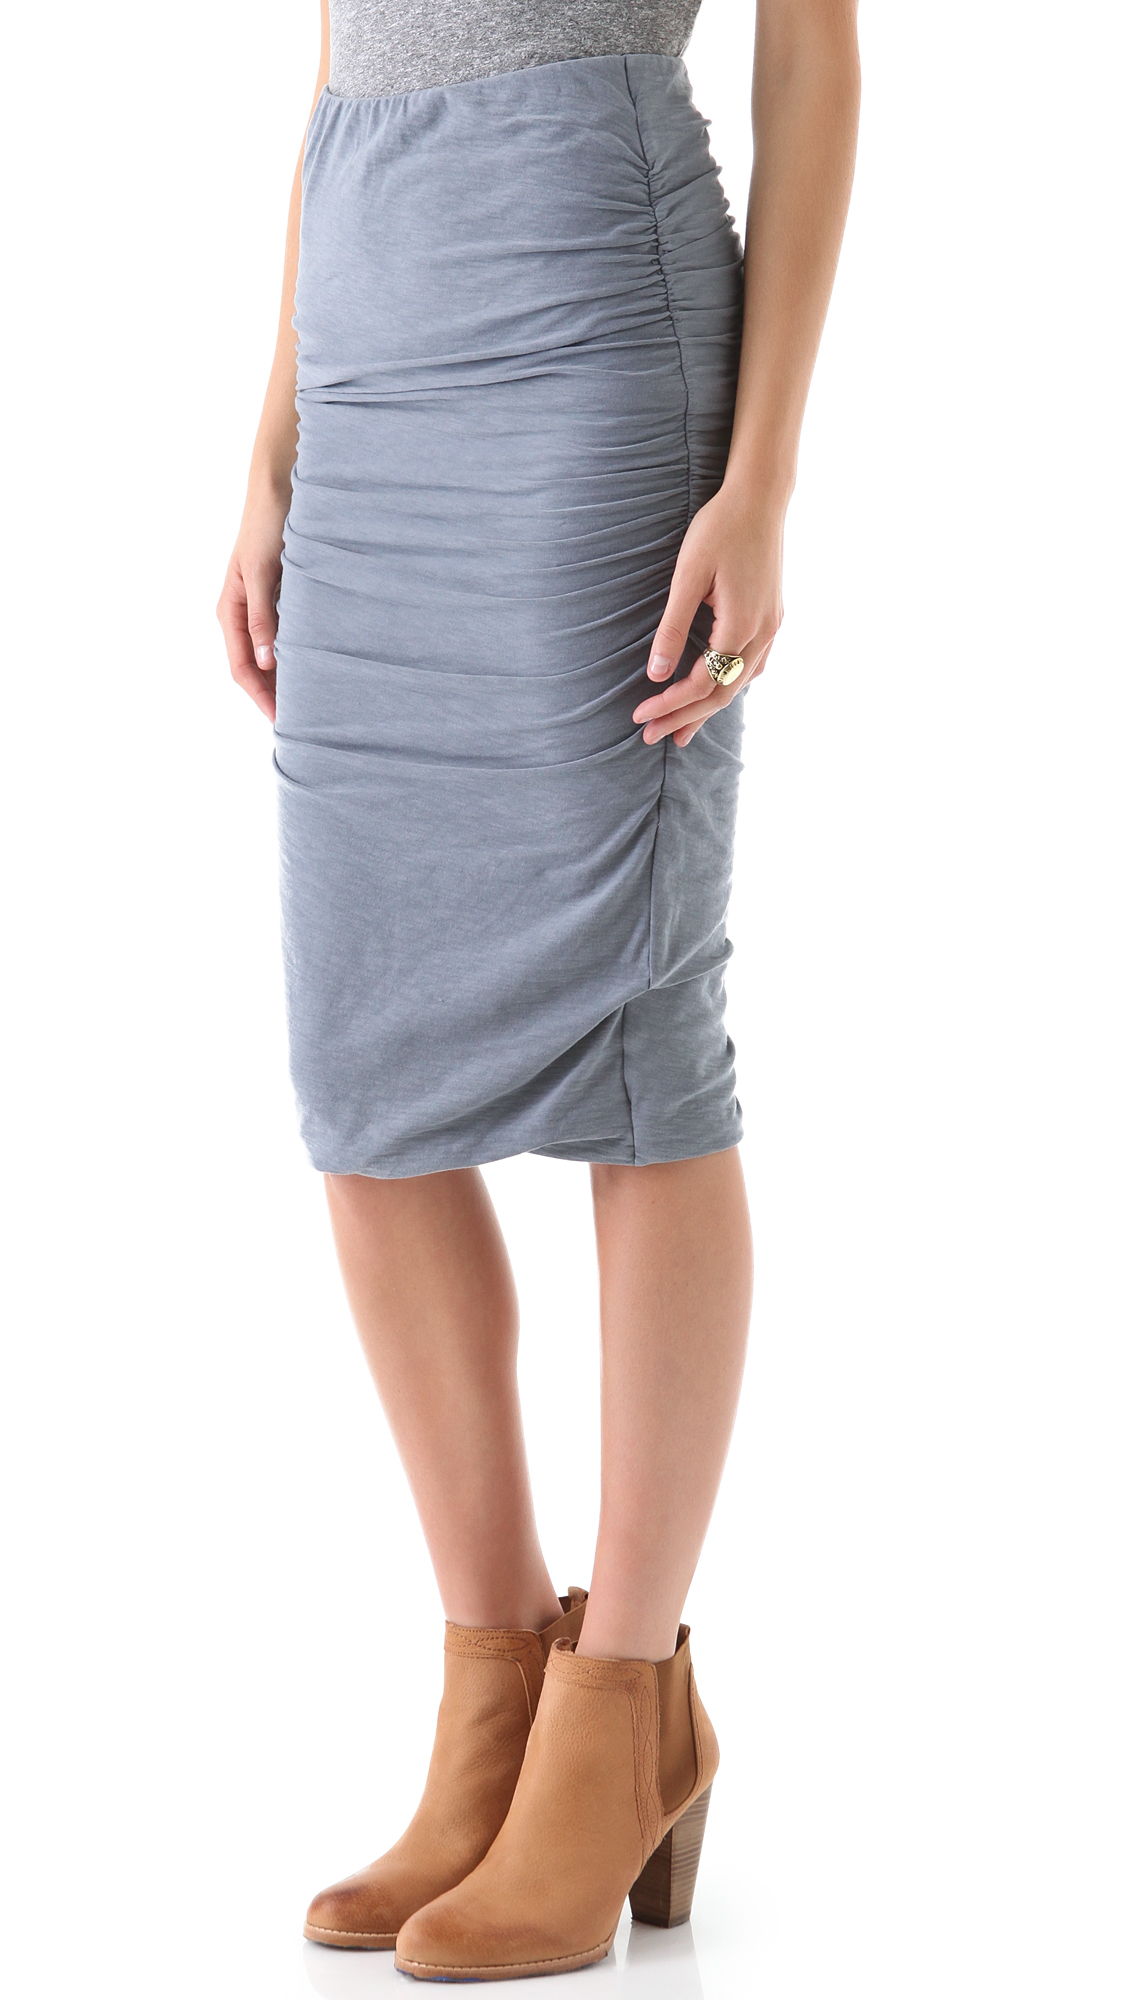 James perse Ruched Pencil Skirt in Gray | Lyst